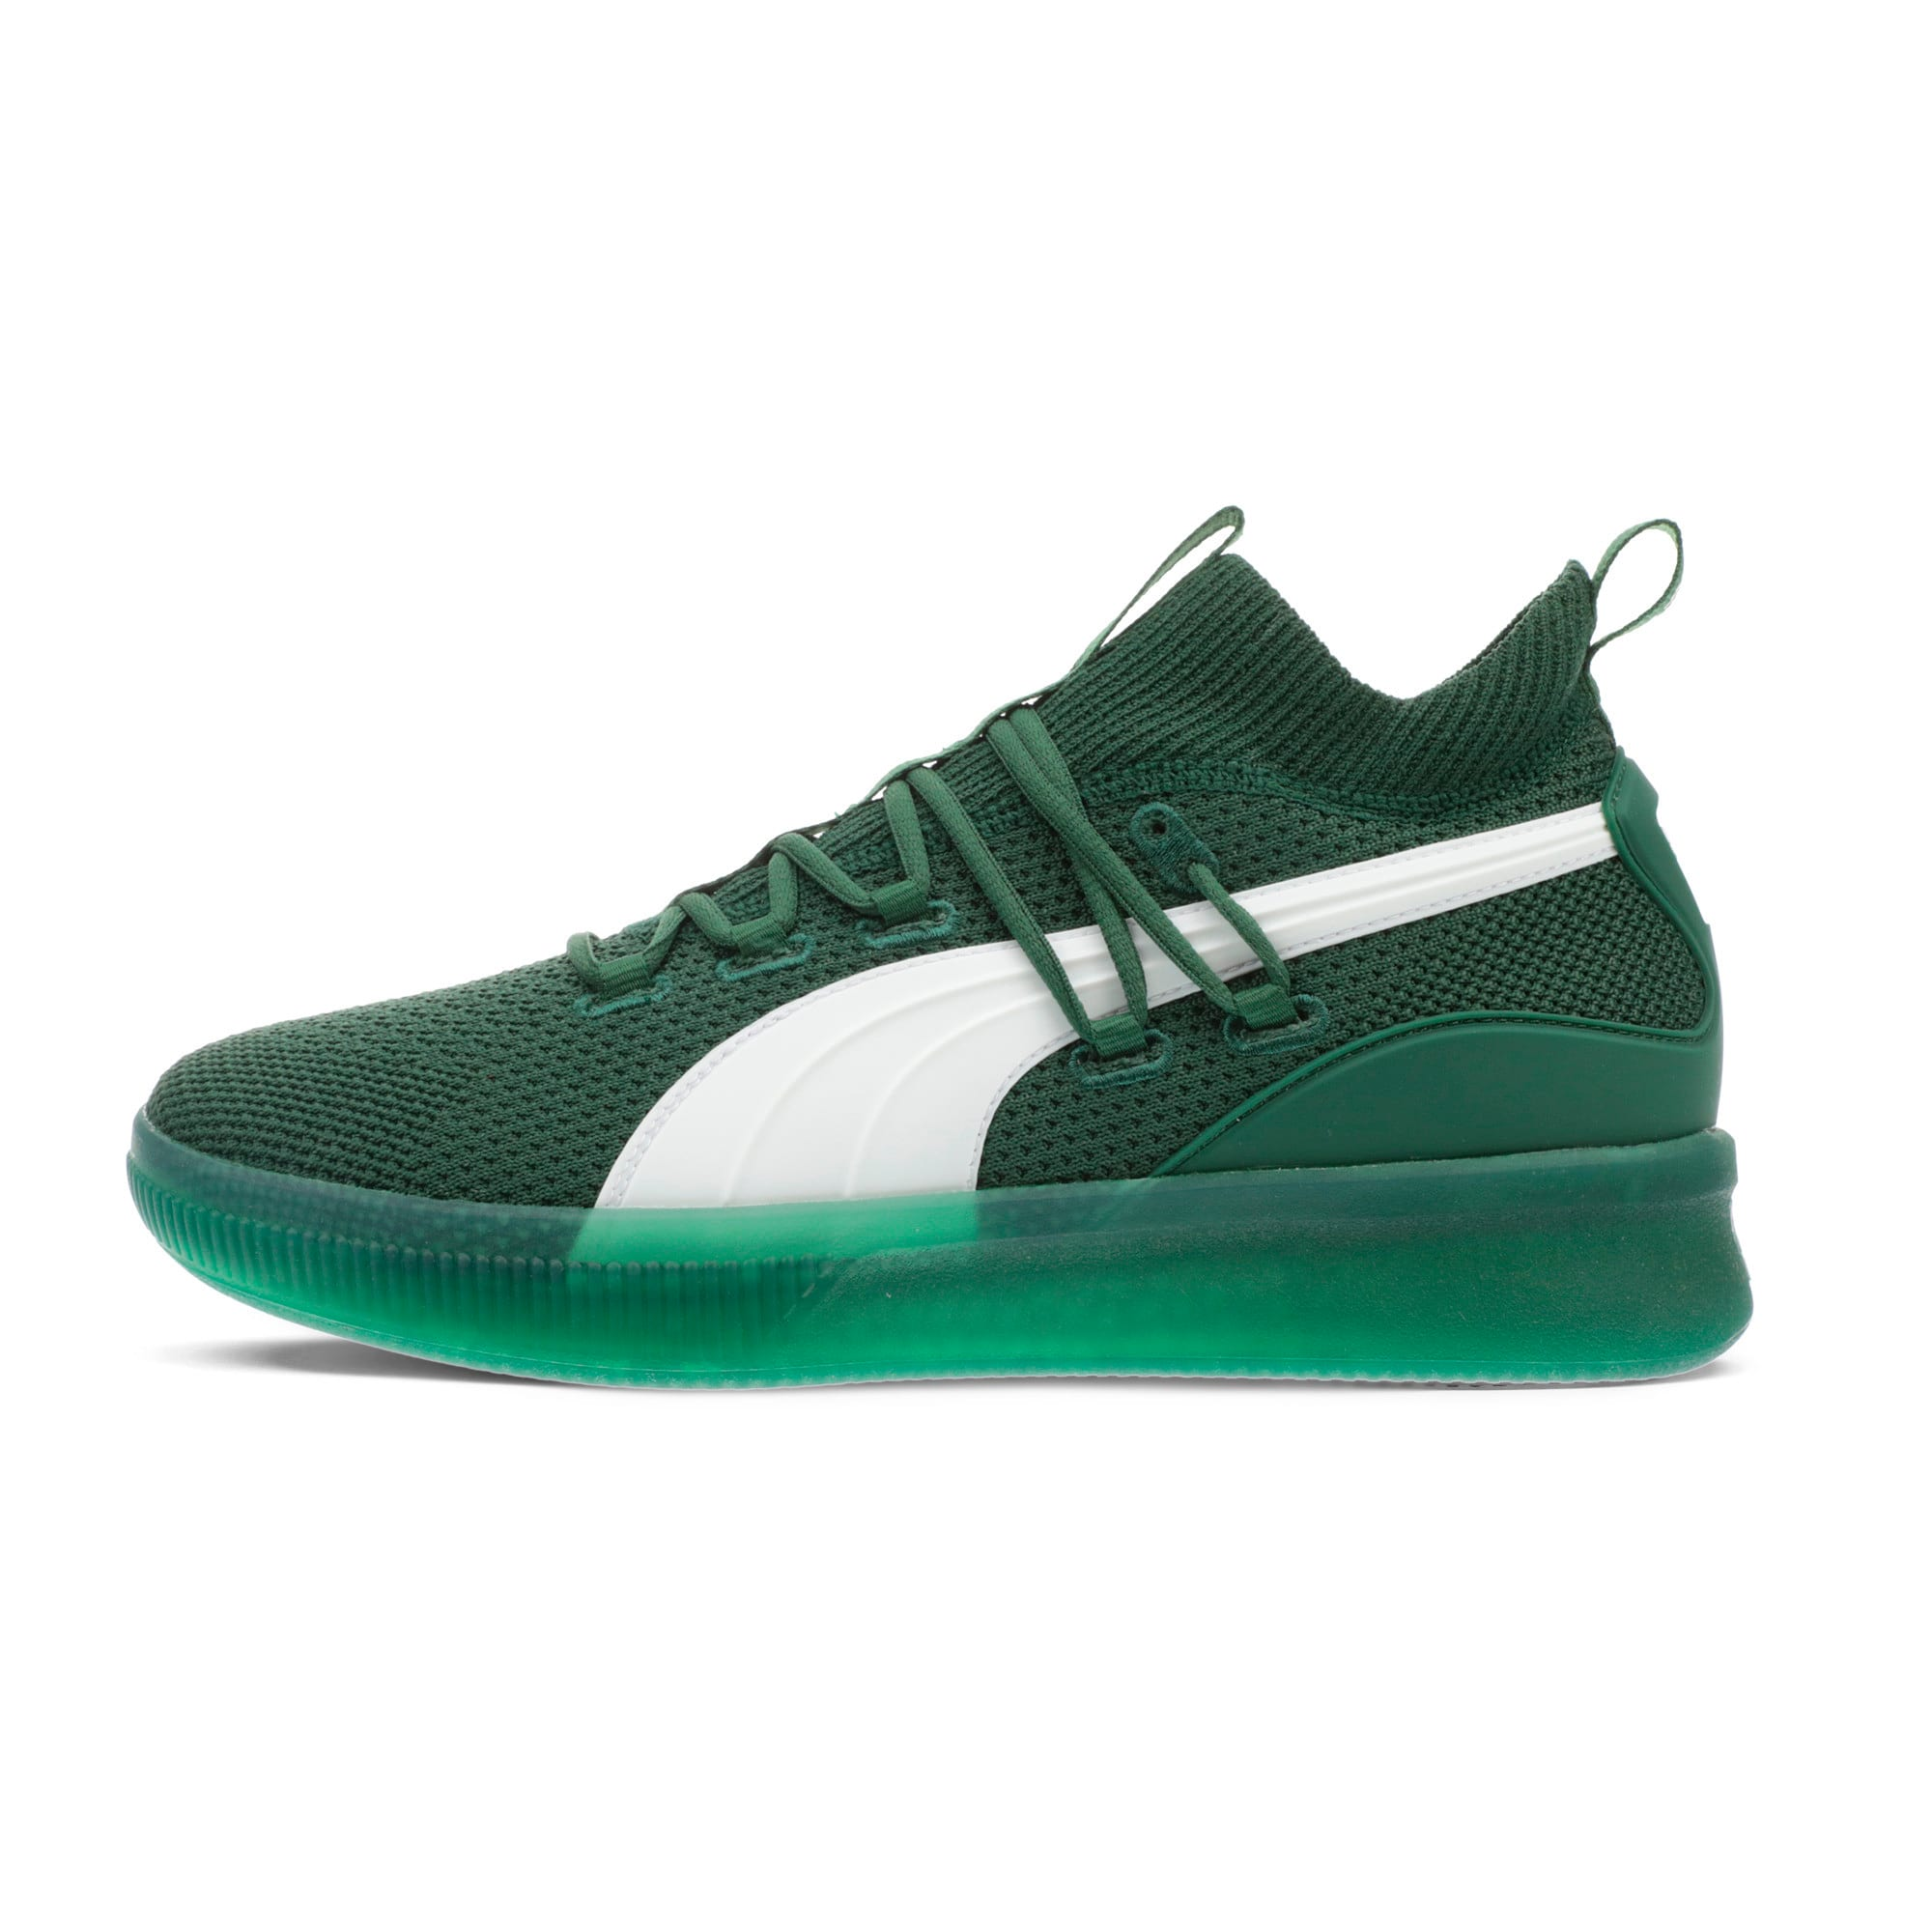 Thumbnail 1 of Clyde Court Core Basketball Shoes, Dark Green-Puma White, medium